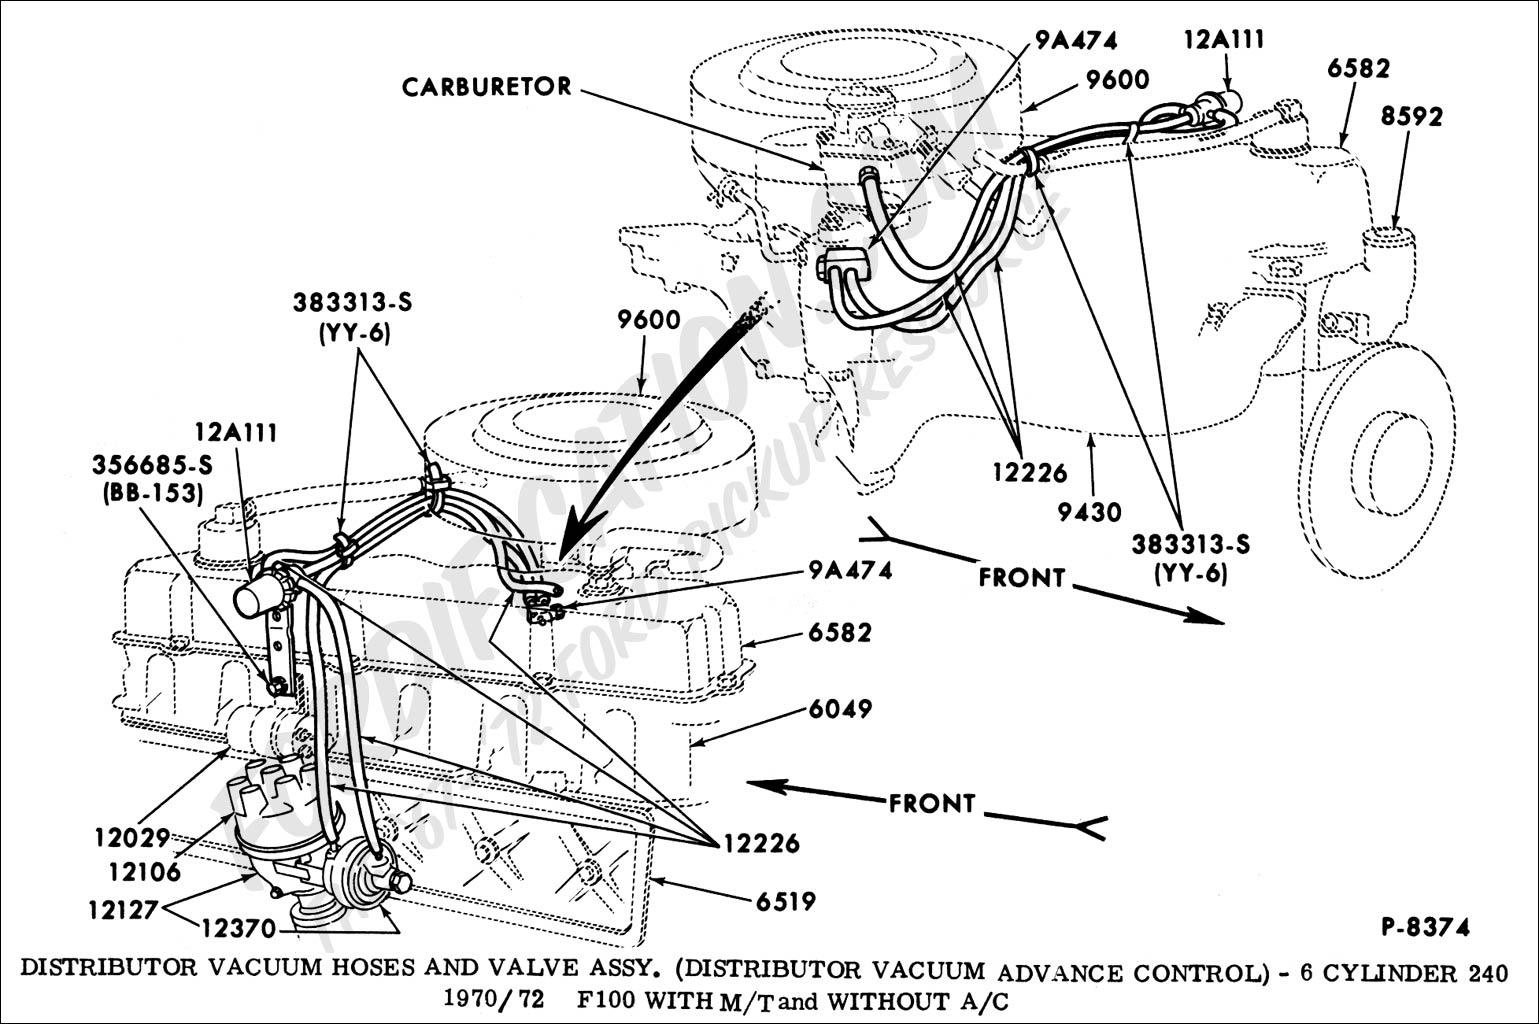 Ford Truck Technical Drawings and Schematics - Section I ... on mustang alternator wiring diagram, 1990 ford alternator wiring diagram, cj7 alternator wiring diagram, taurus alternator wiring diagram,